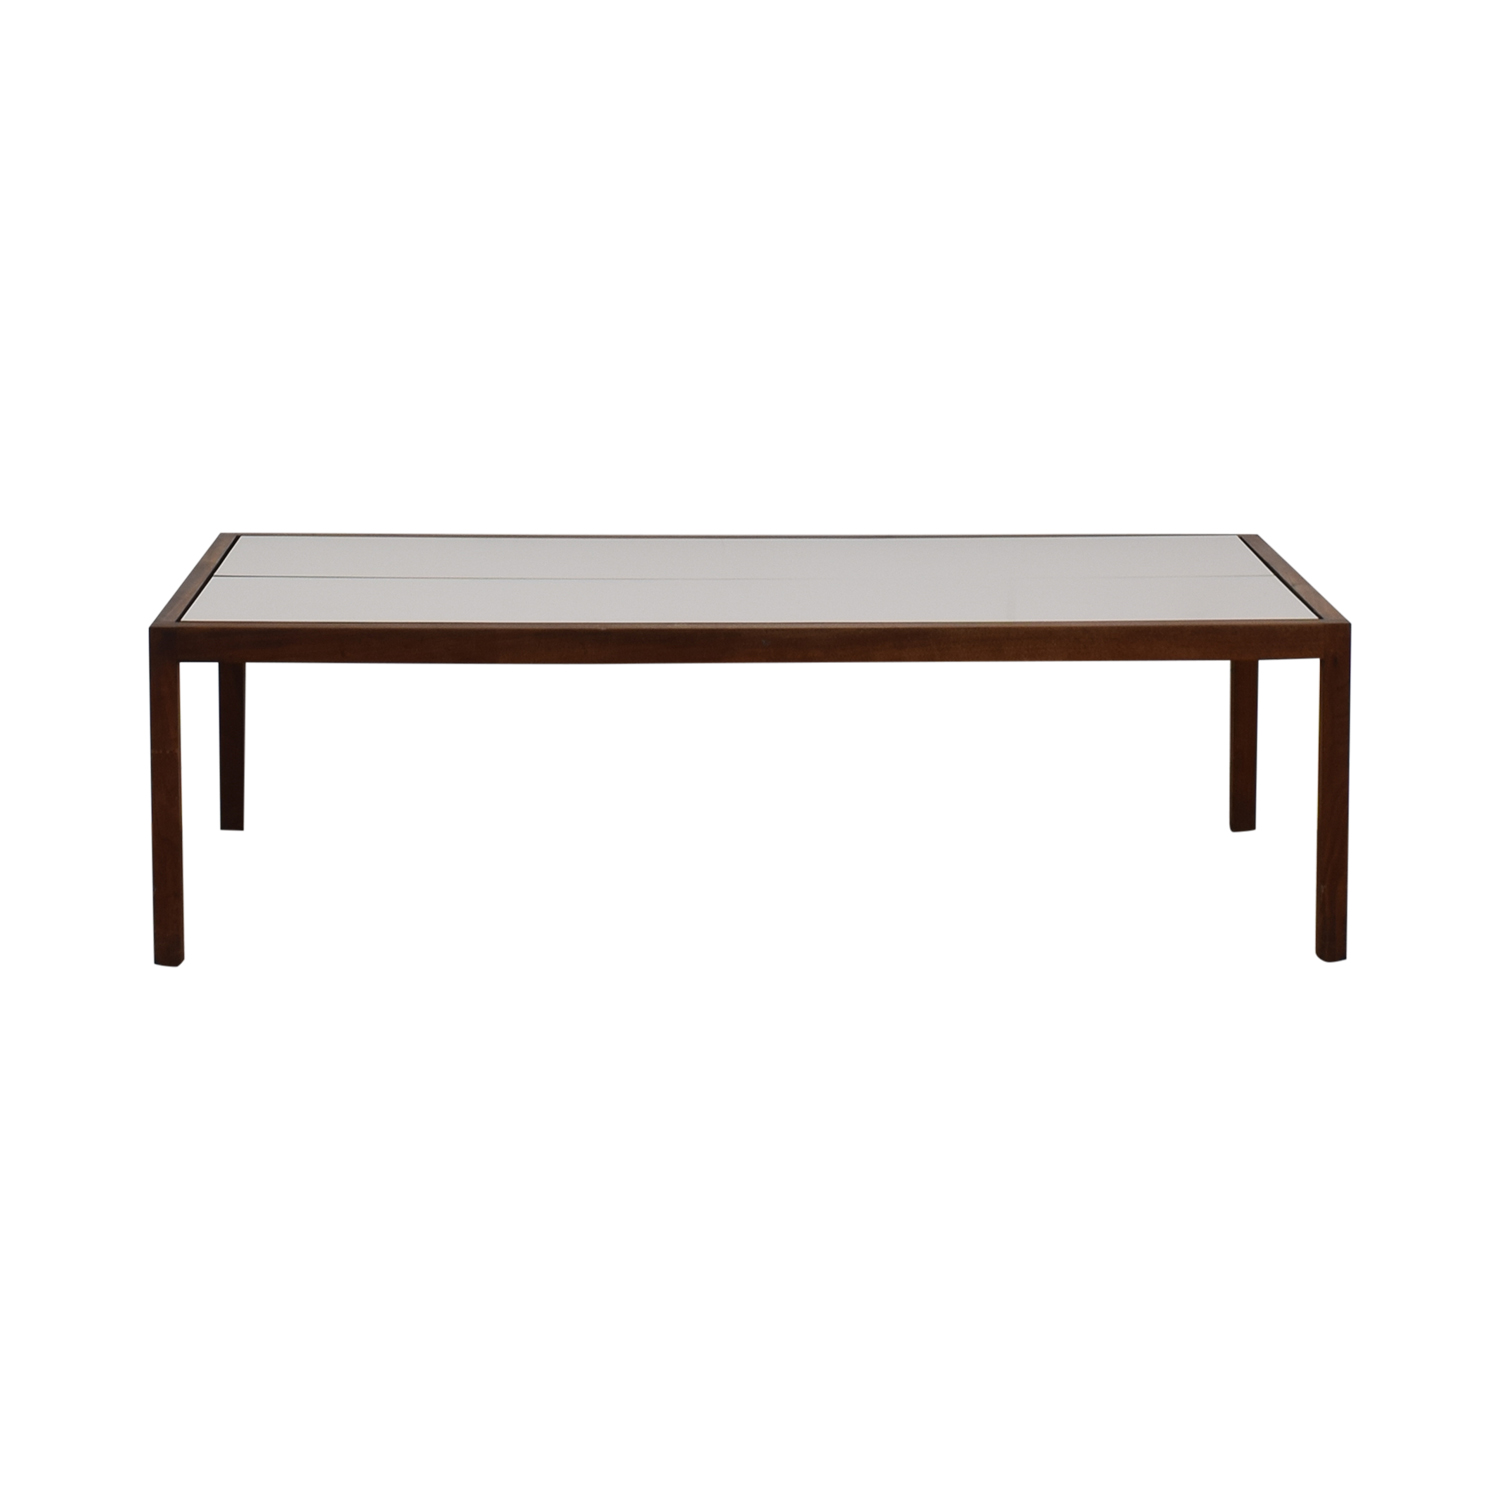 Knoll knoll white laminate and walnut coffee table price